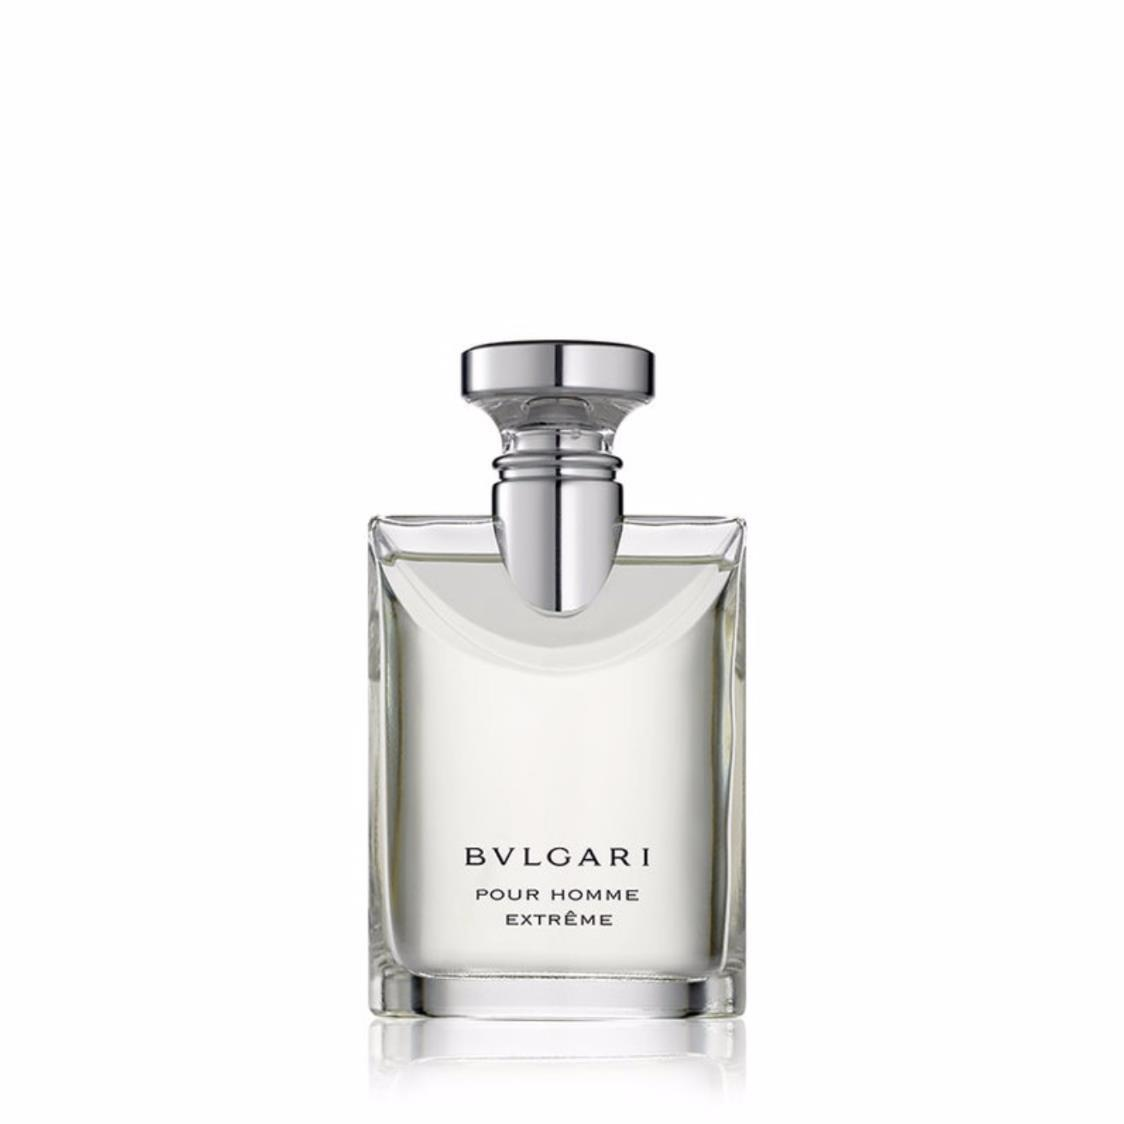 Pour Homme Extreme Edt 100ml Metro Department Store Bvlgari Parfum For Men 100 Ml